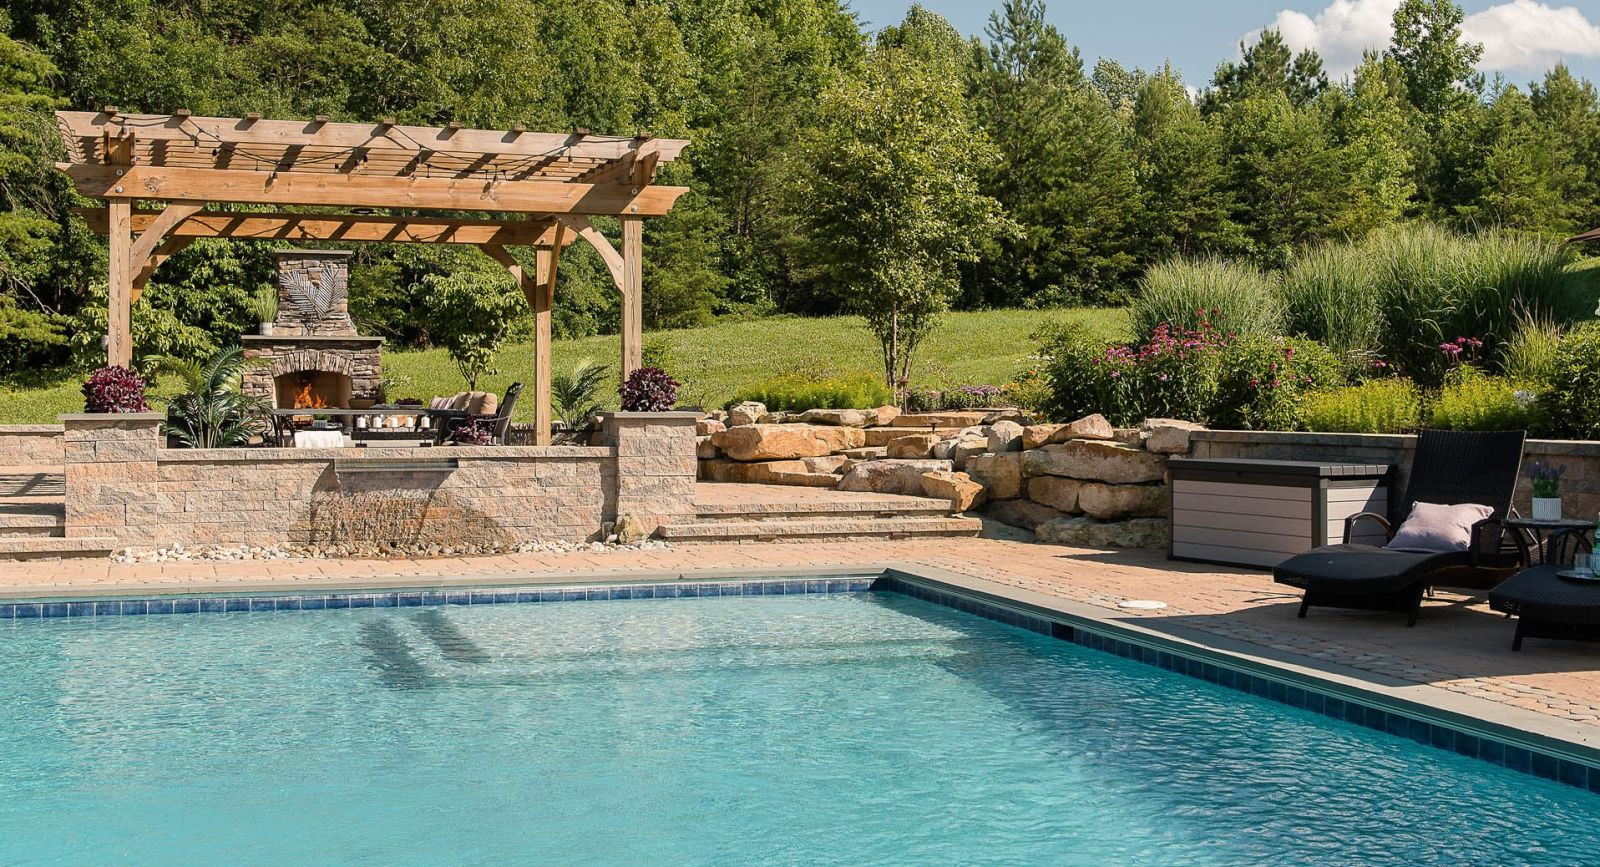 Luxury backyard pool surrounded by red brick paver patio and longe chairs, fire place and pergola